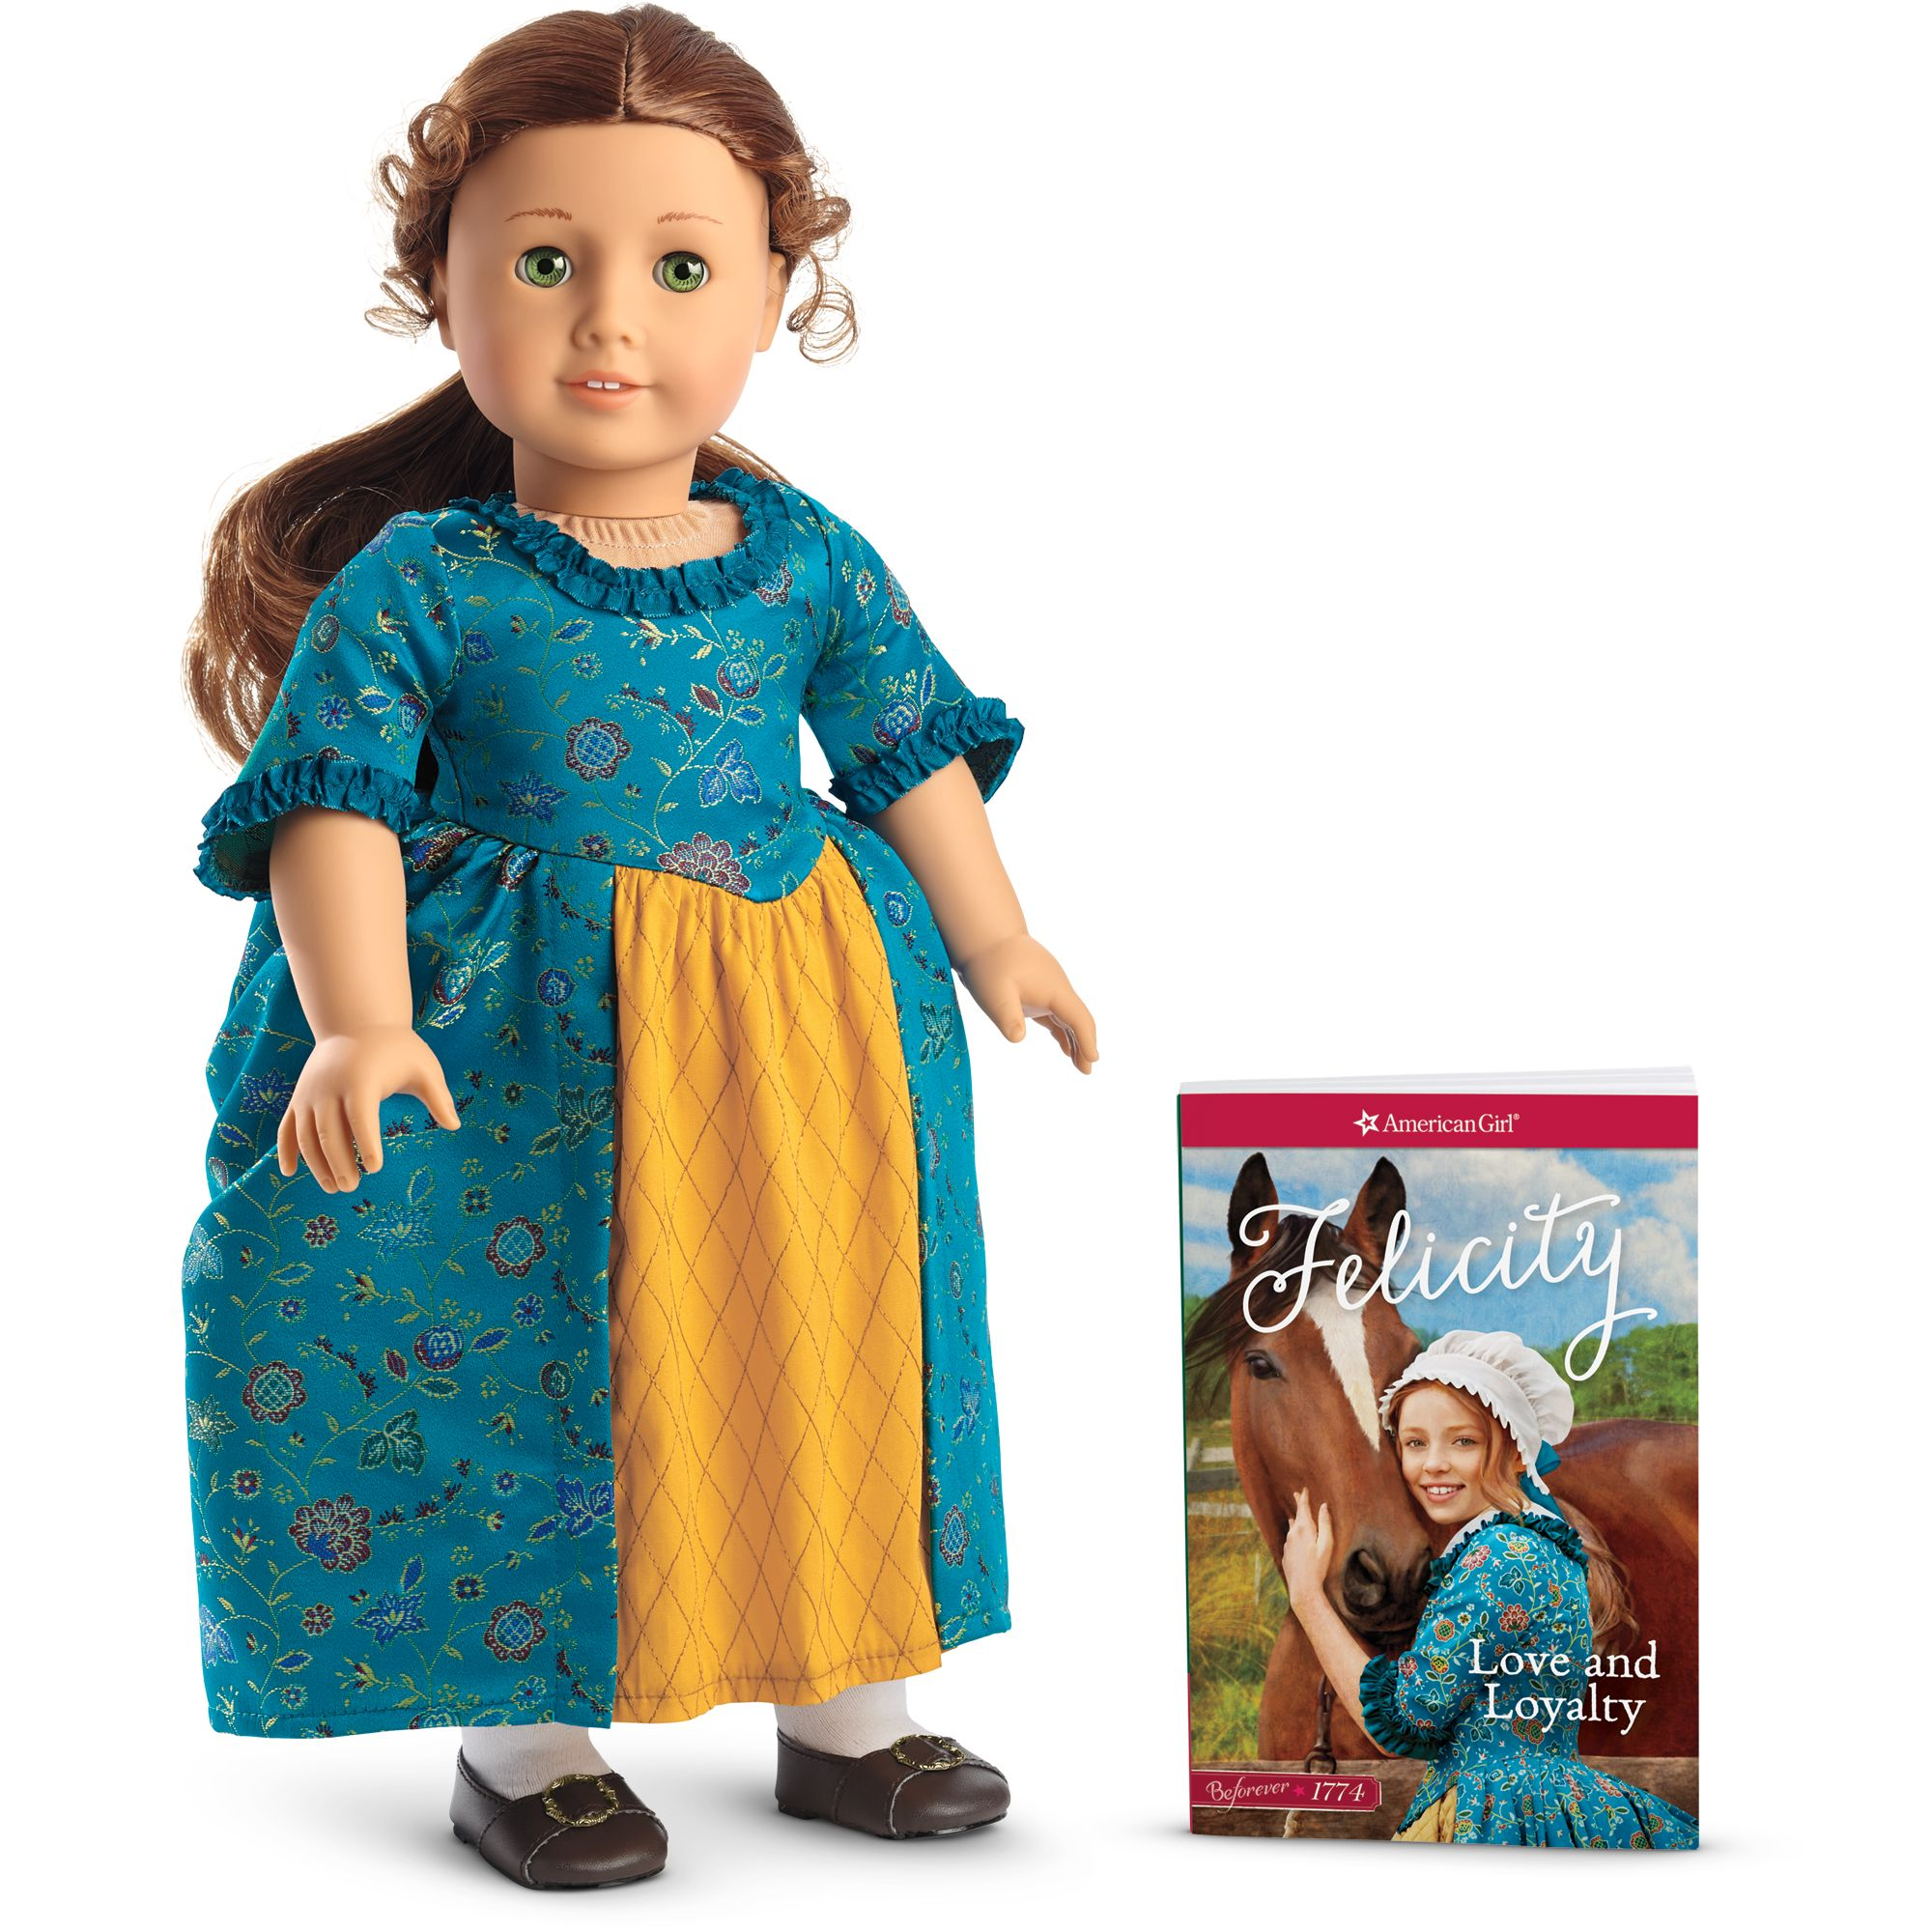 Baby And Me Doll Clothes Felicity Merriman Doll American